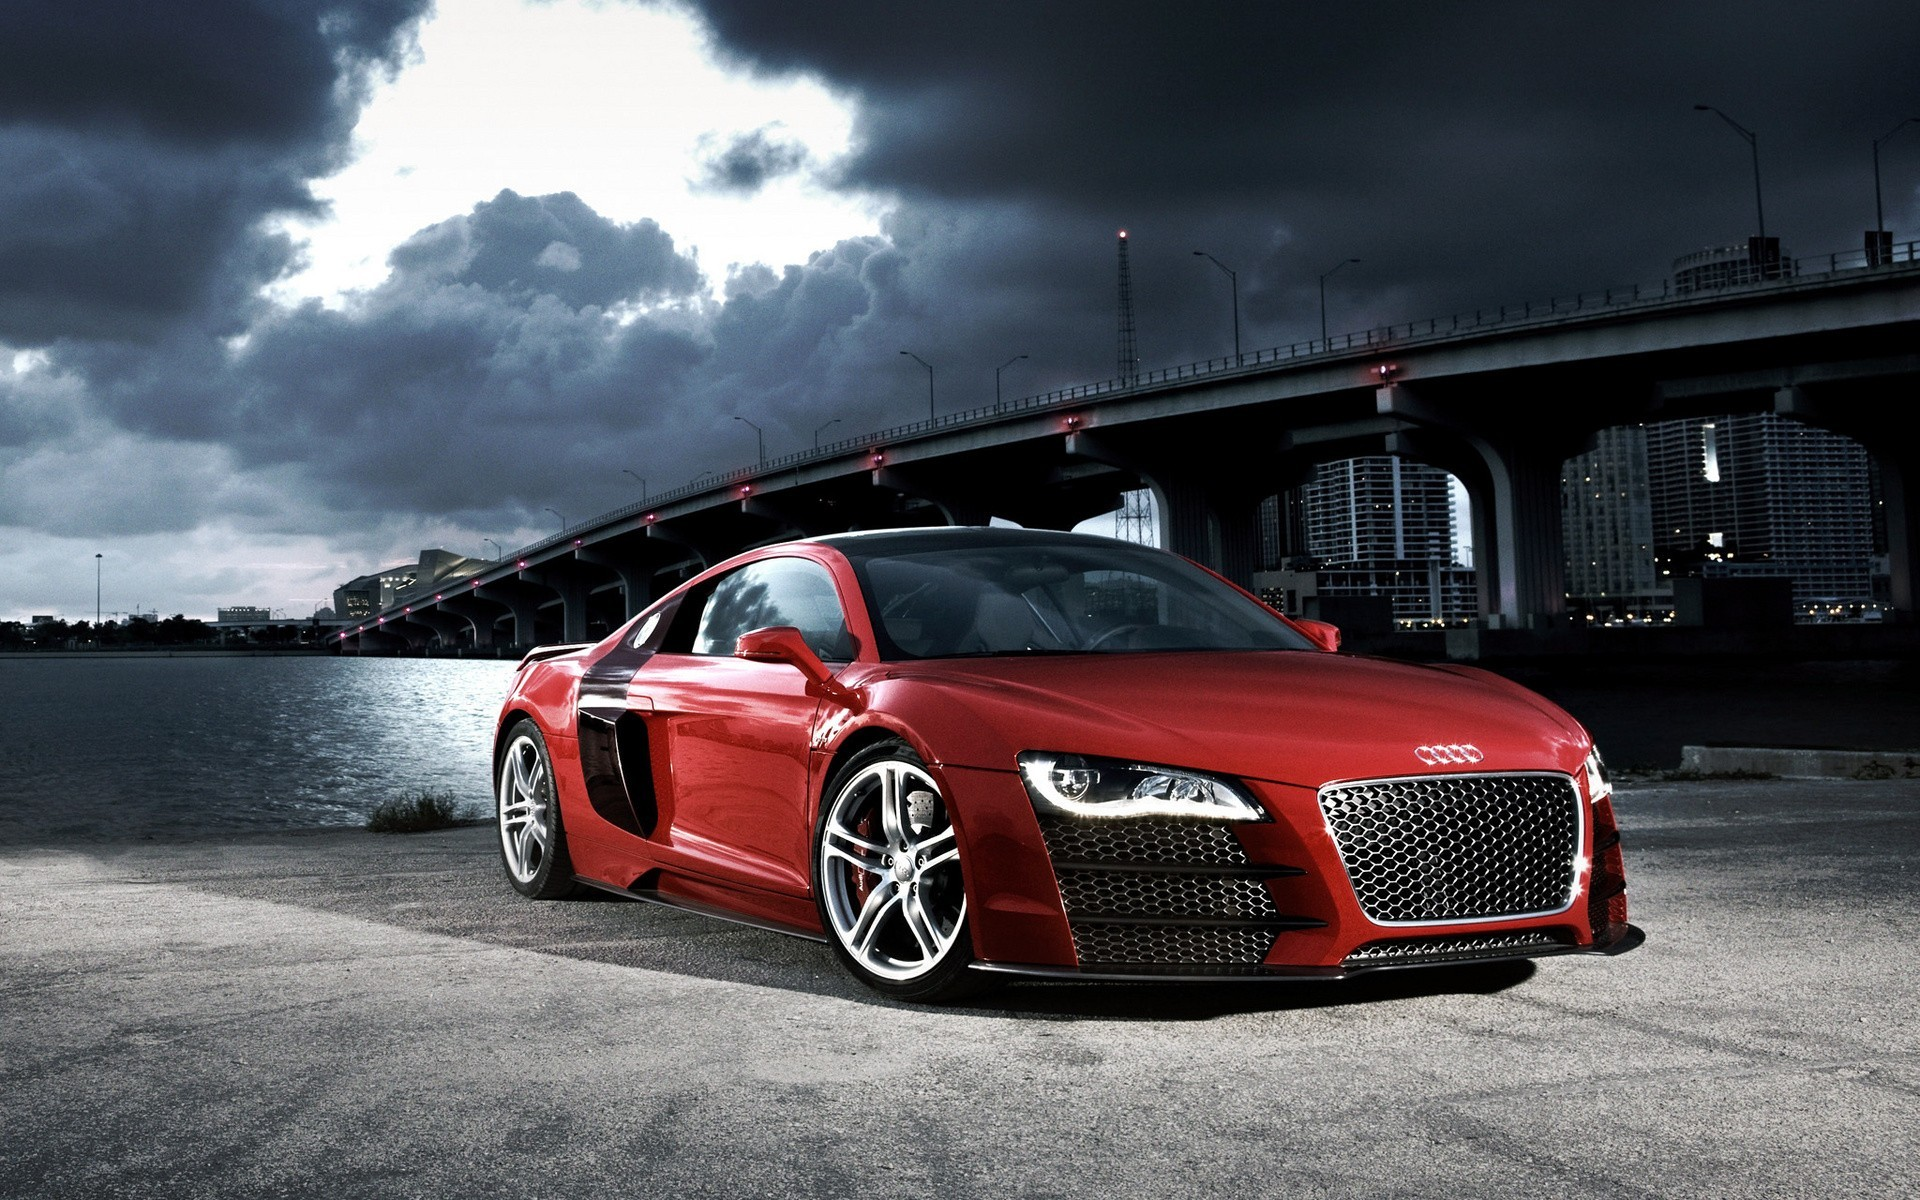 Audi R8 TDI Le Mans Concept Wallpapers HD Wallpapers 1920x1200